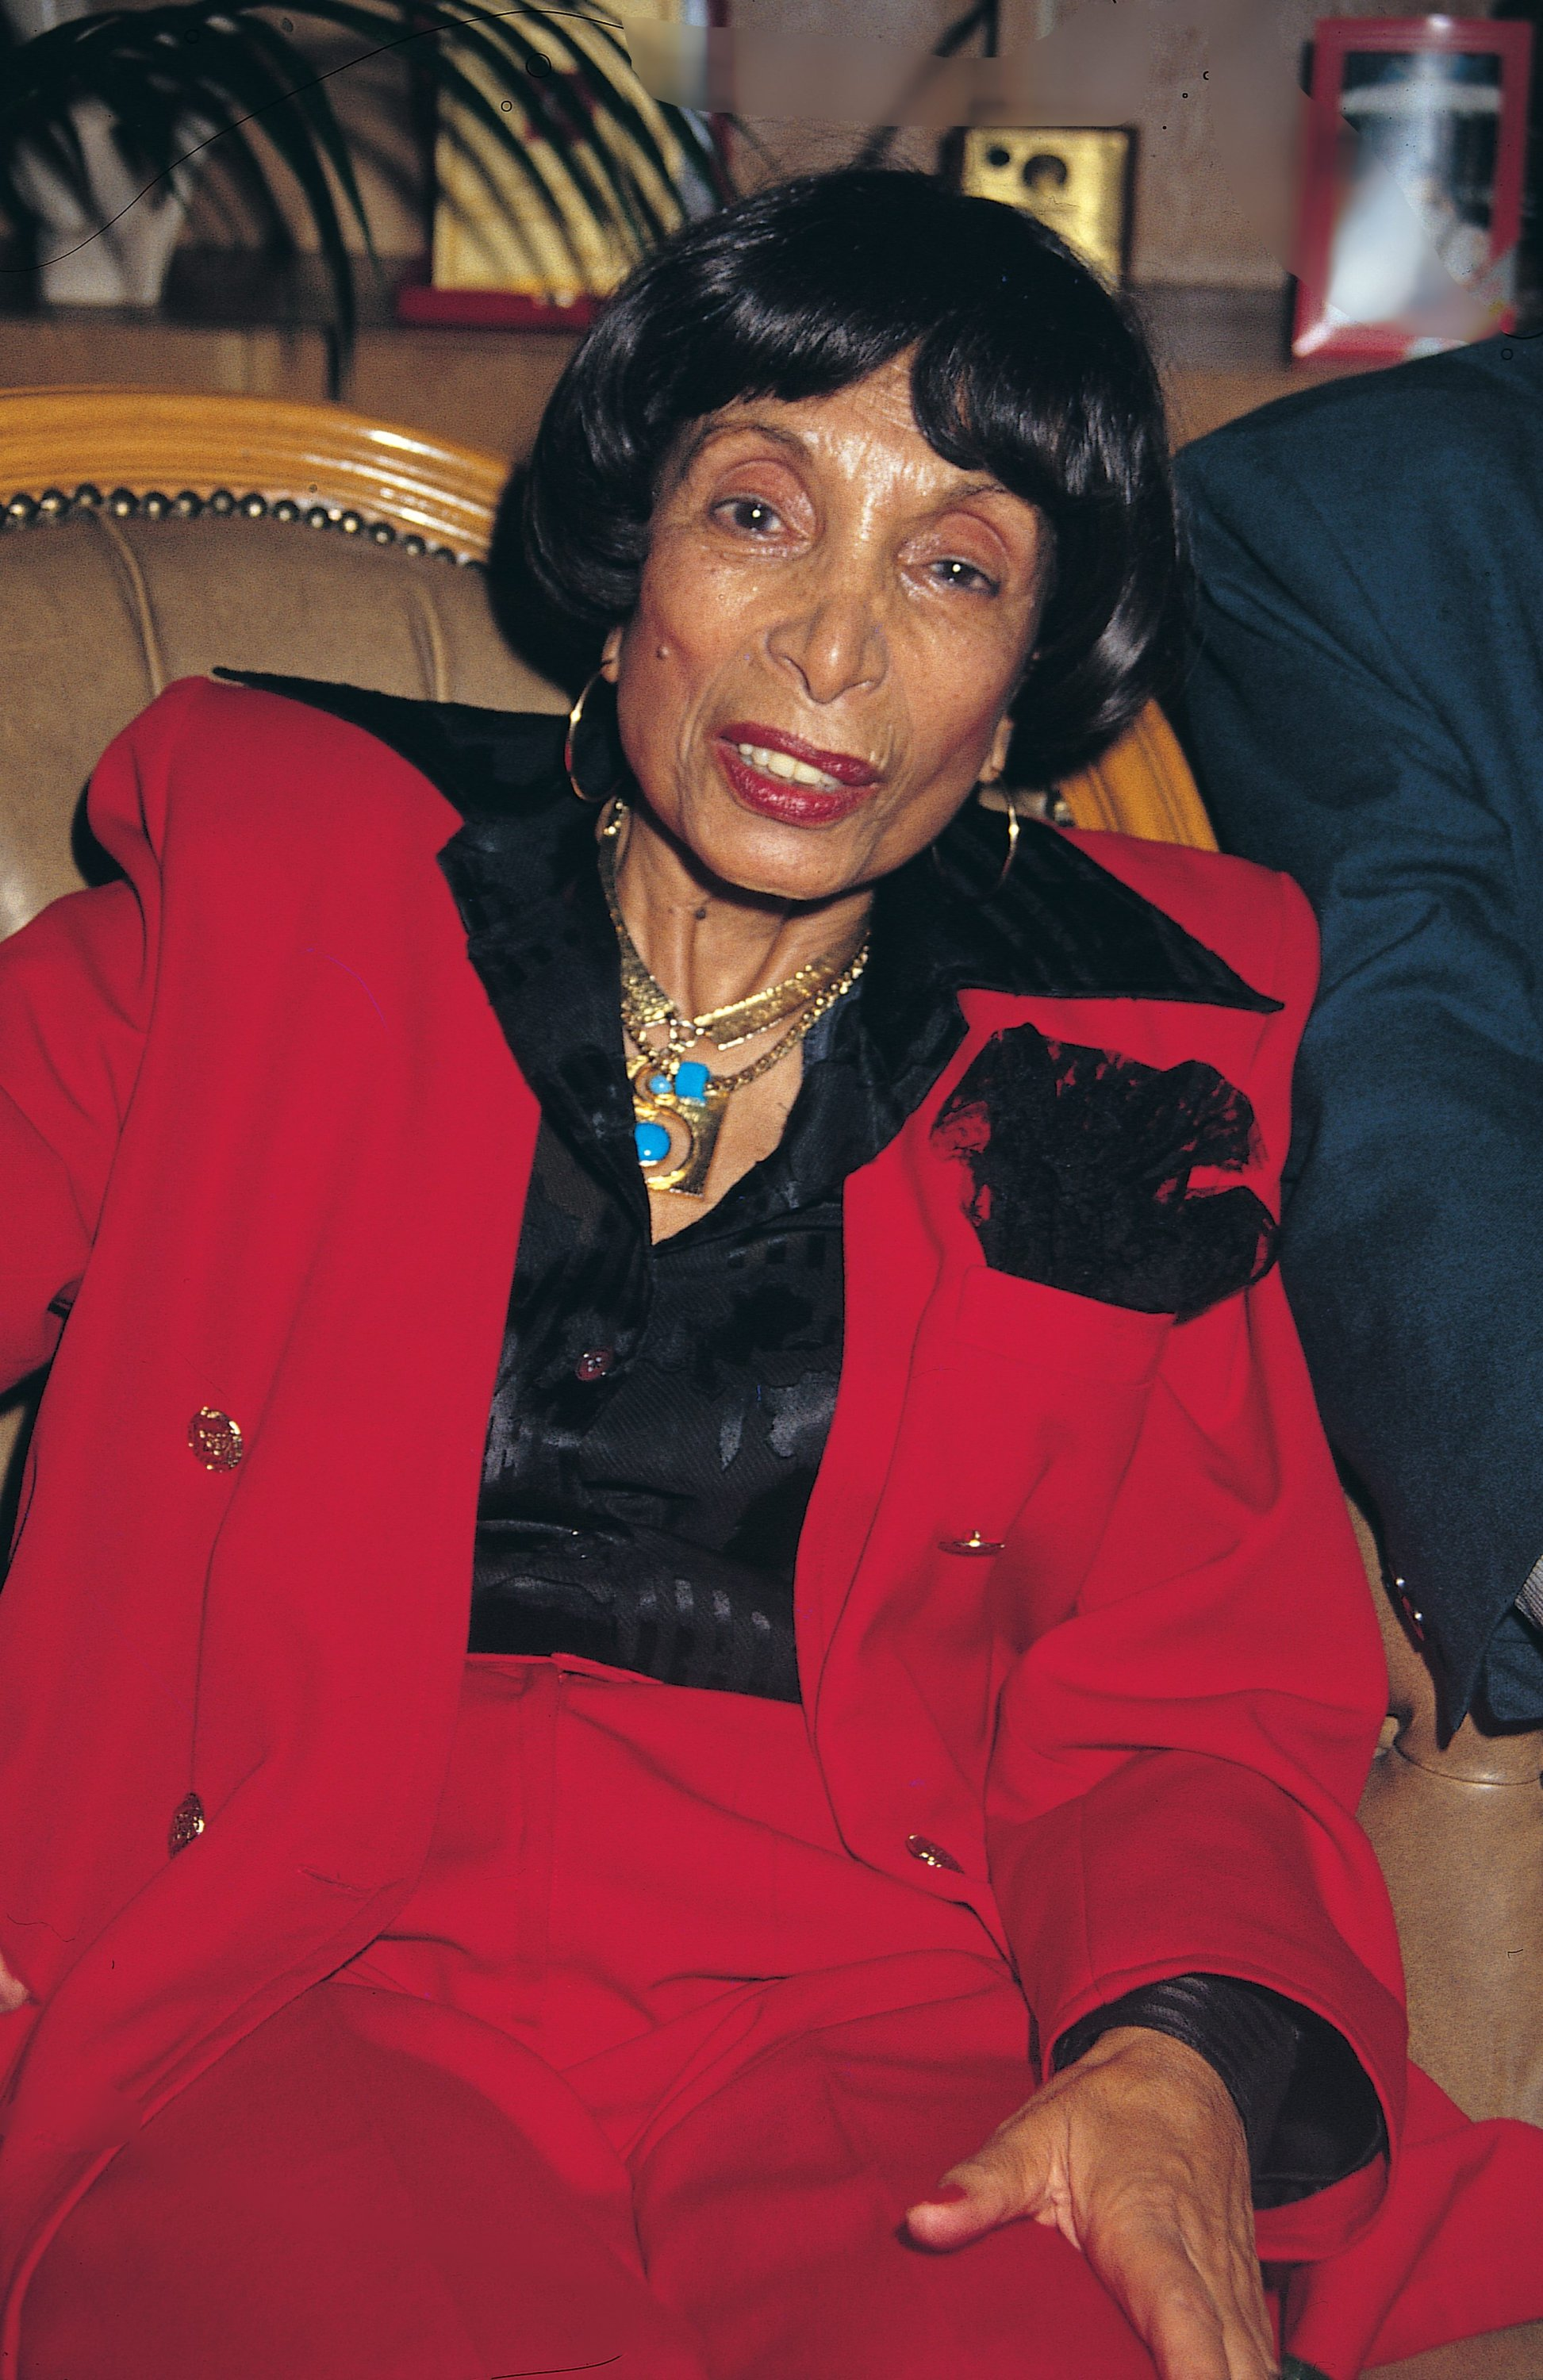 Safiye Ayla made more than 500 records of sorrowful music throughout her long life. (Archive Photo)